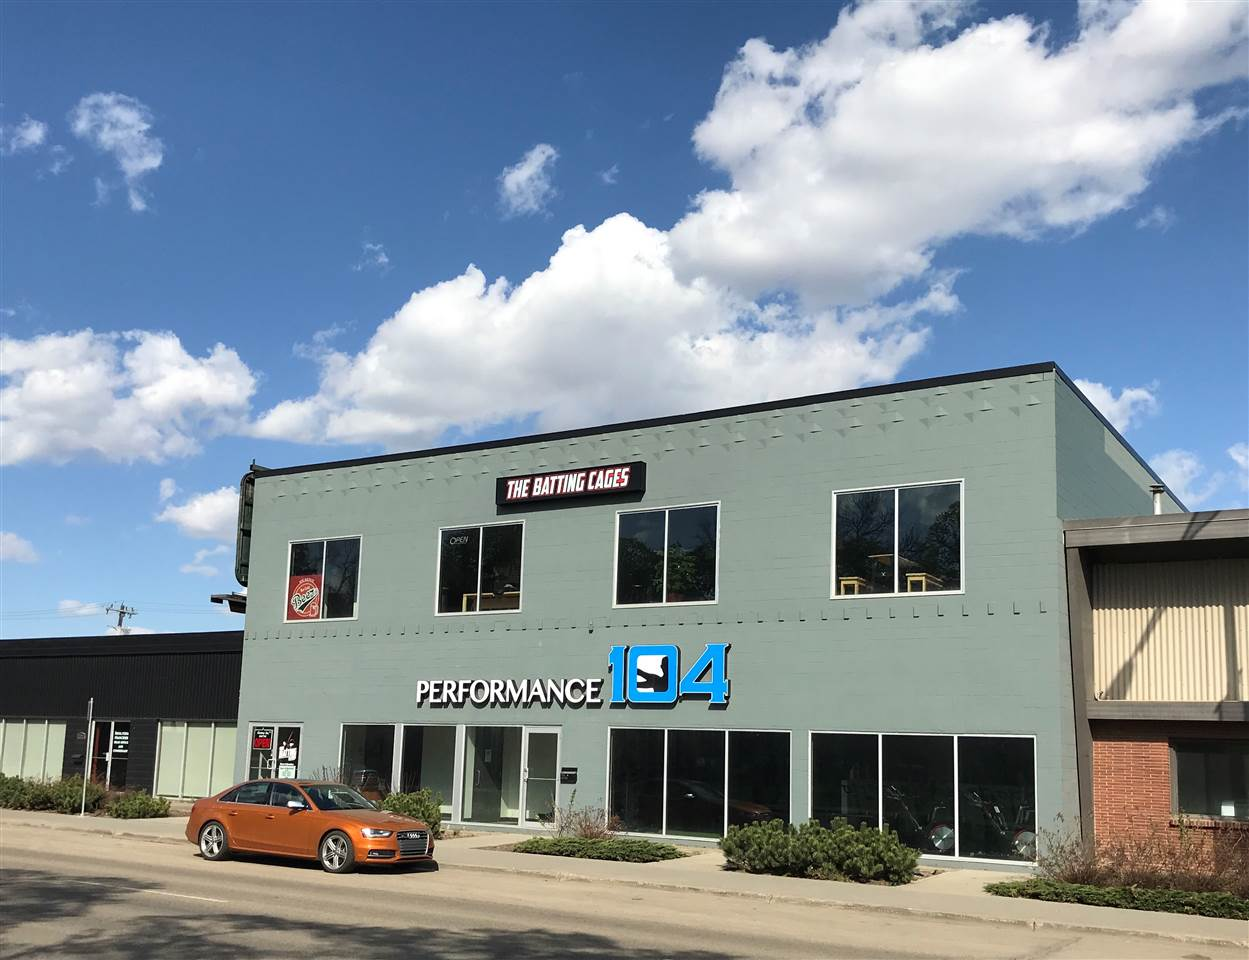 10,560 sq ft, two storey freestanding building fronting Calgary Trail. Rental Income from second floor tenant and out front media sign. Extensively upgraded with new tenant improvements on both main and second floor, new roof, new windows, new mechanical systems and recently painted exterior.